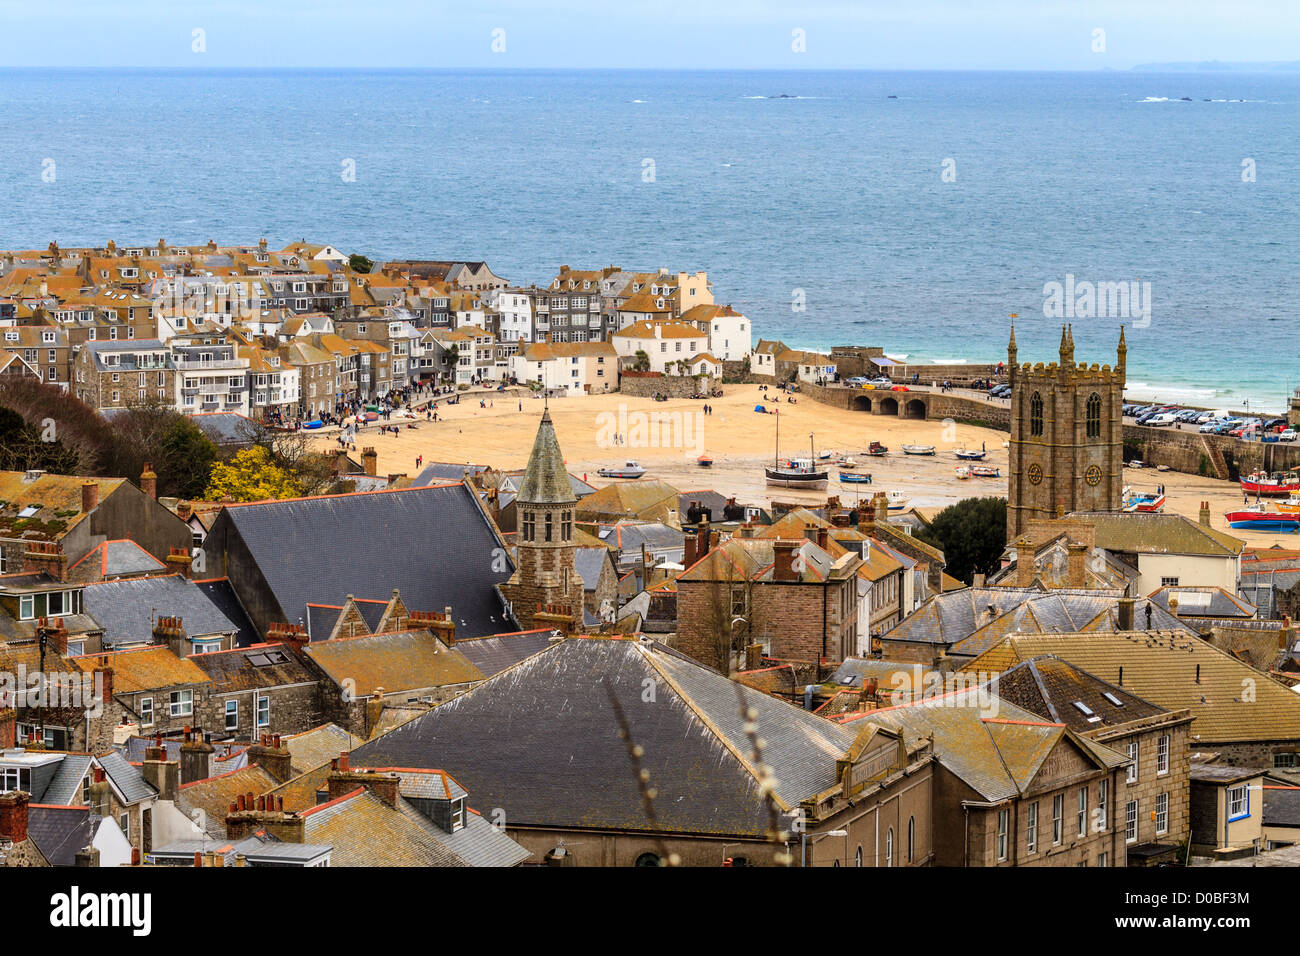 Seaside Village of St. Ives, Cornwall, UK. Roof top view of the harbor Stock Photo